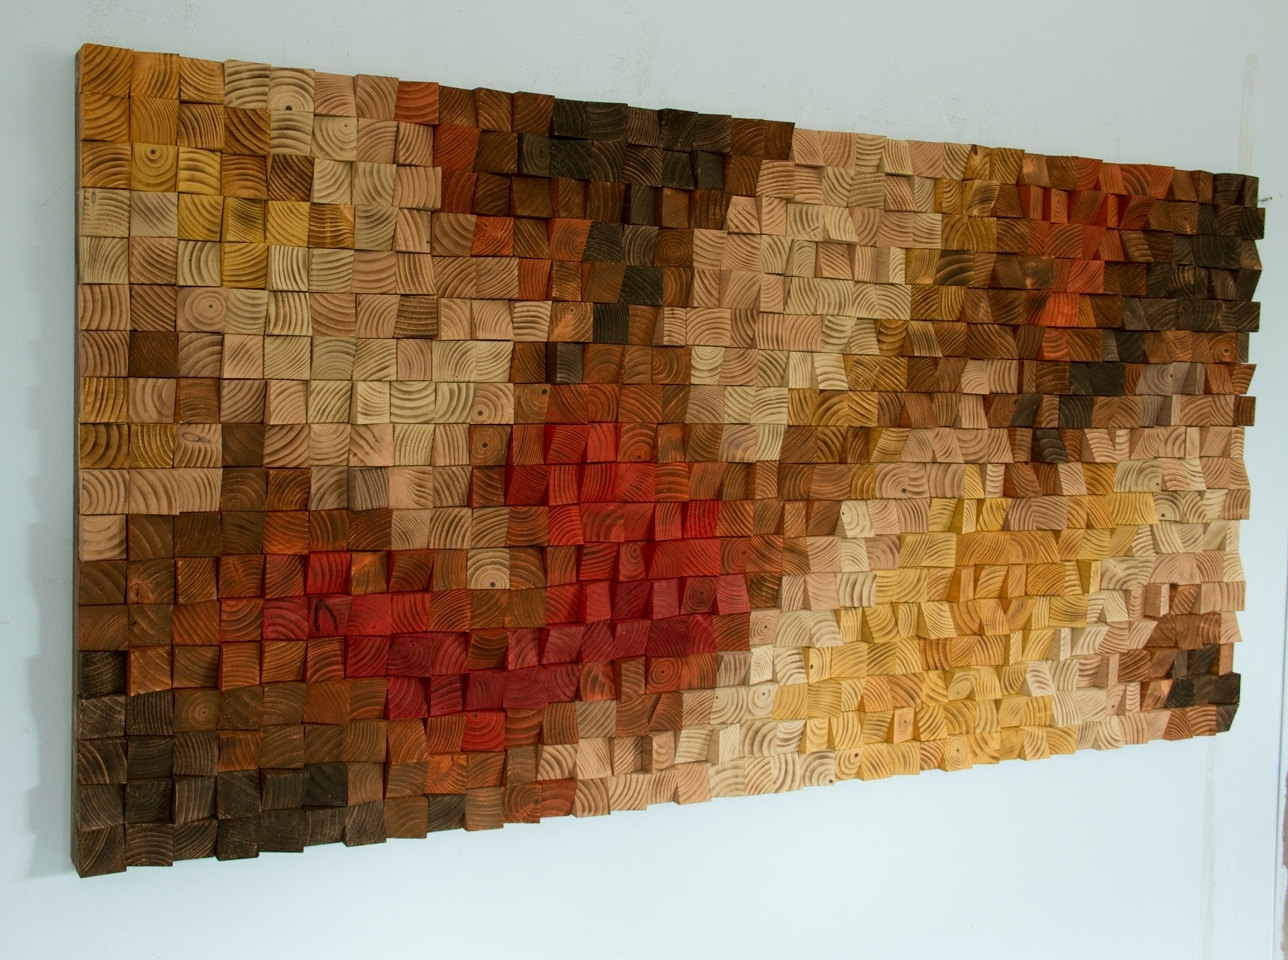 Large Rustic Wood Wall Art, Wood Wall Sculpture, Abstract Painting Pertaining To 2018 Sculpture Abstract Wall Art (View 6 of 20)